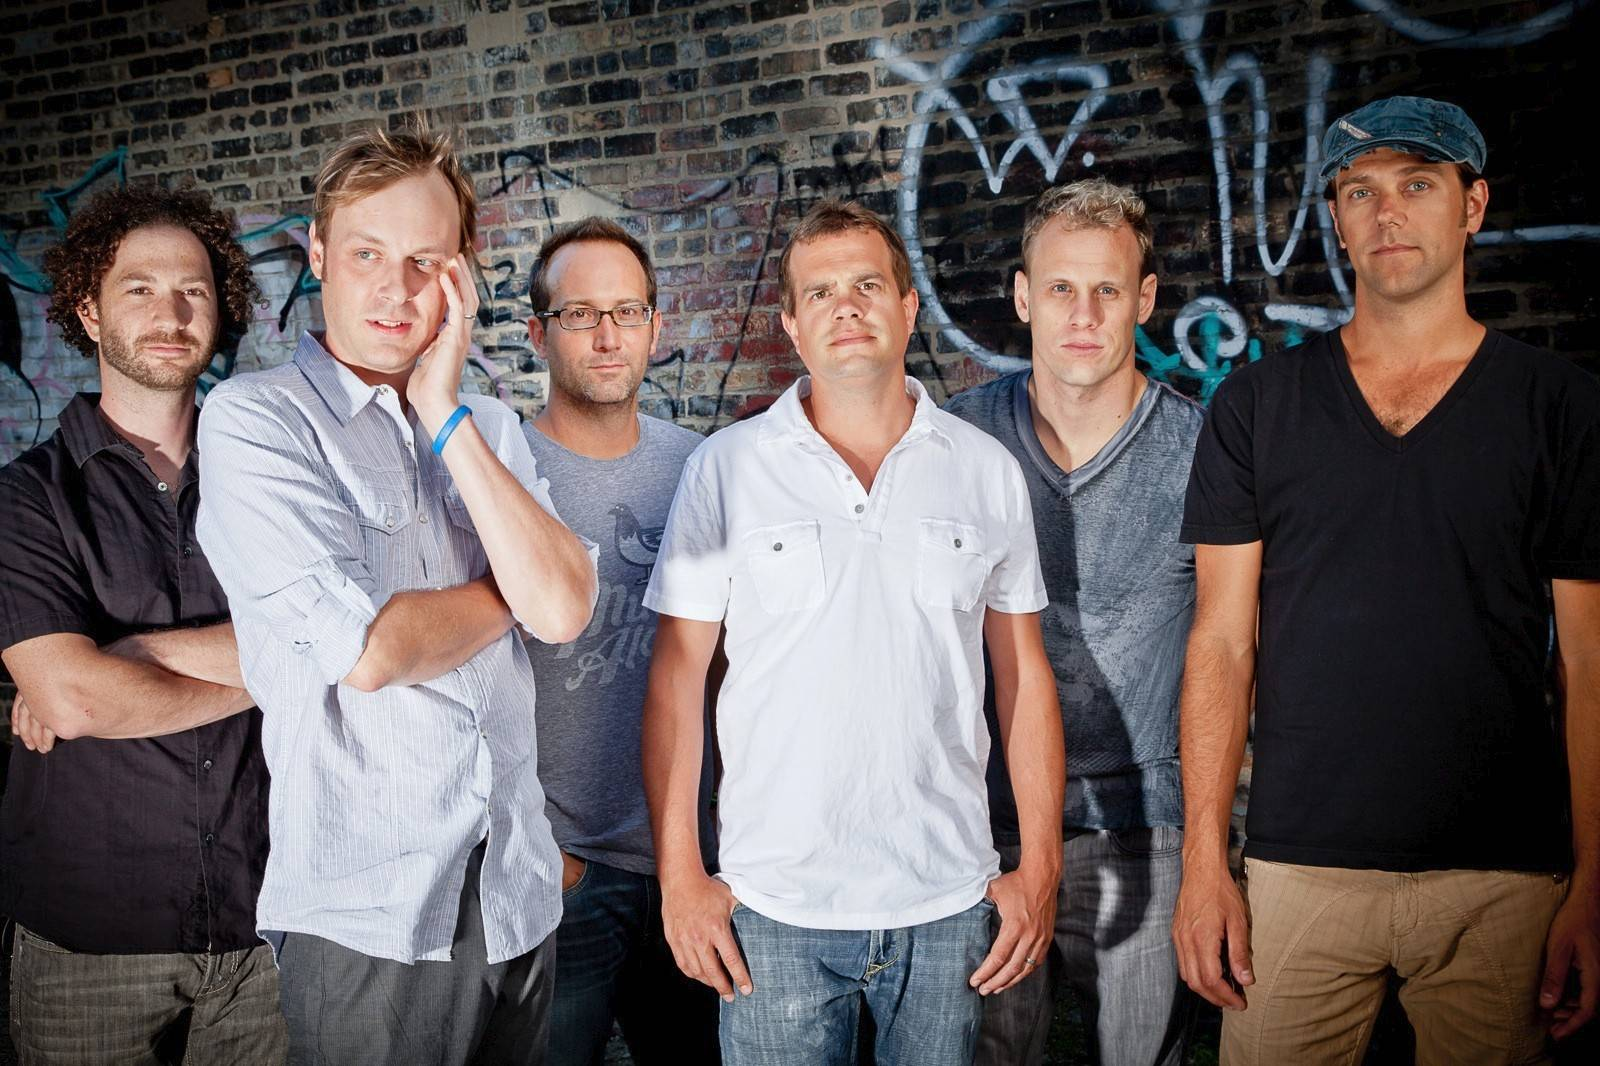 Umphrey's McGee plays Ravinia in Highland Park on Friday, July 25.